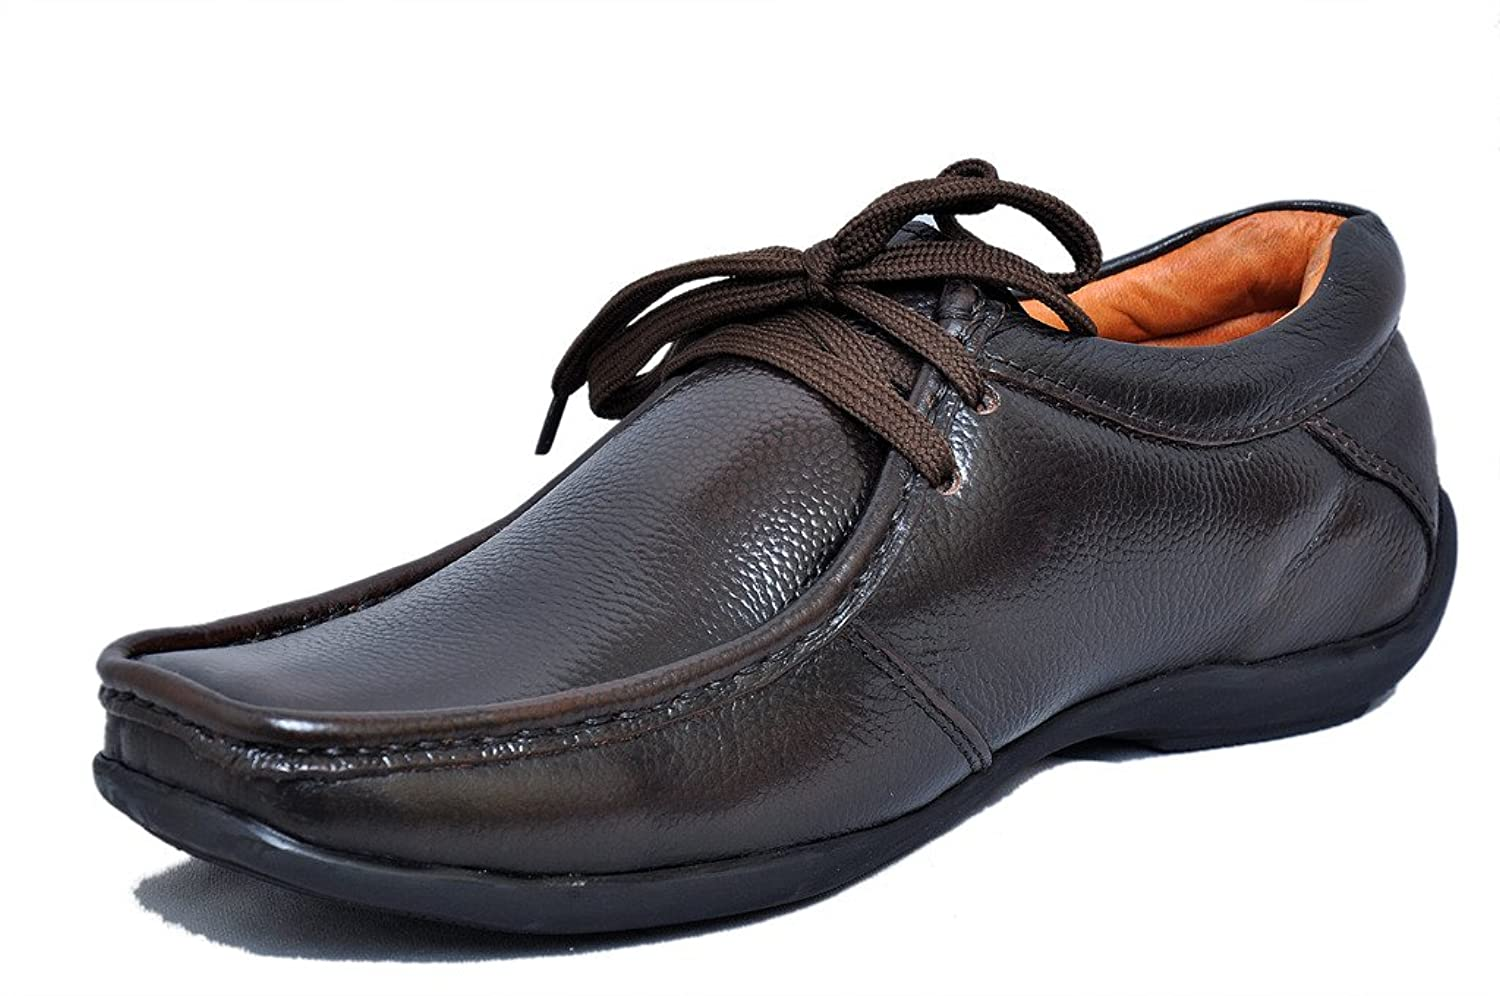 from where i can buy formal shoes which can be used in